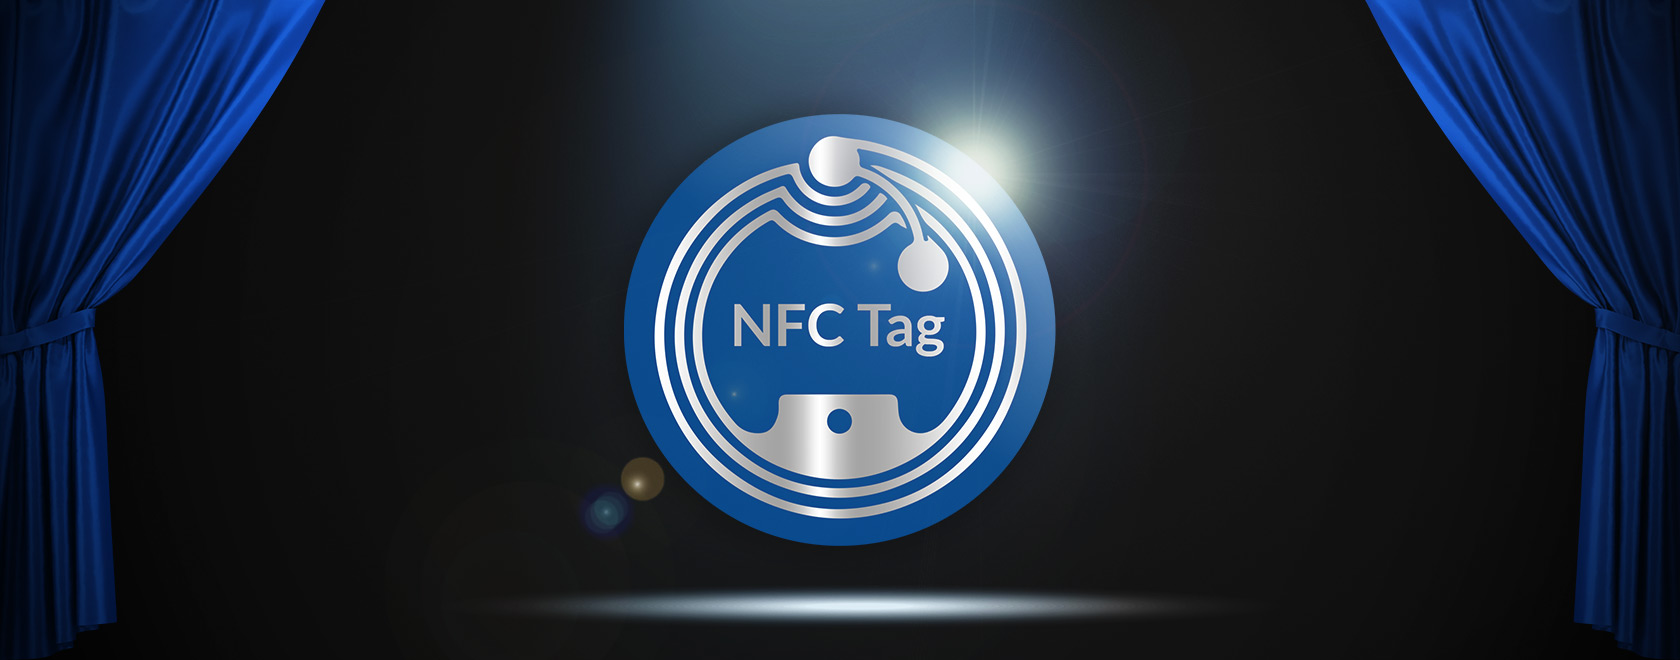 Set the Stage for NFC Forum TR 11.0 and the New Tag Certification. Are you Prepared? We Are.